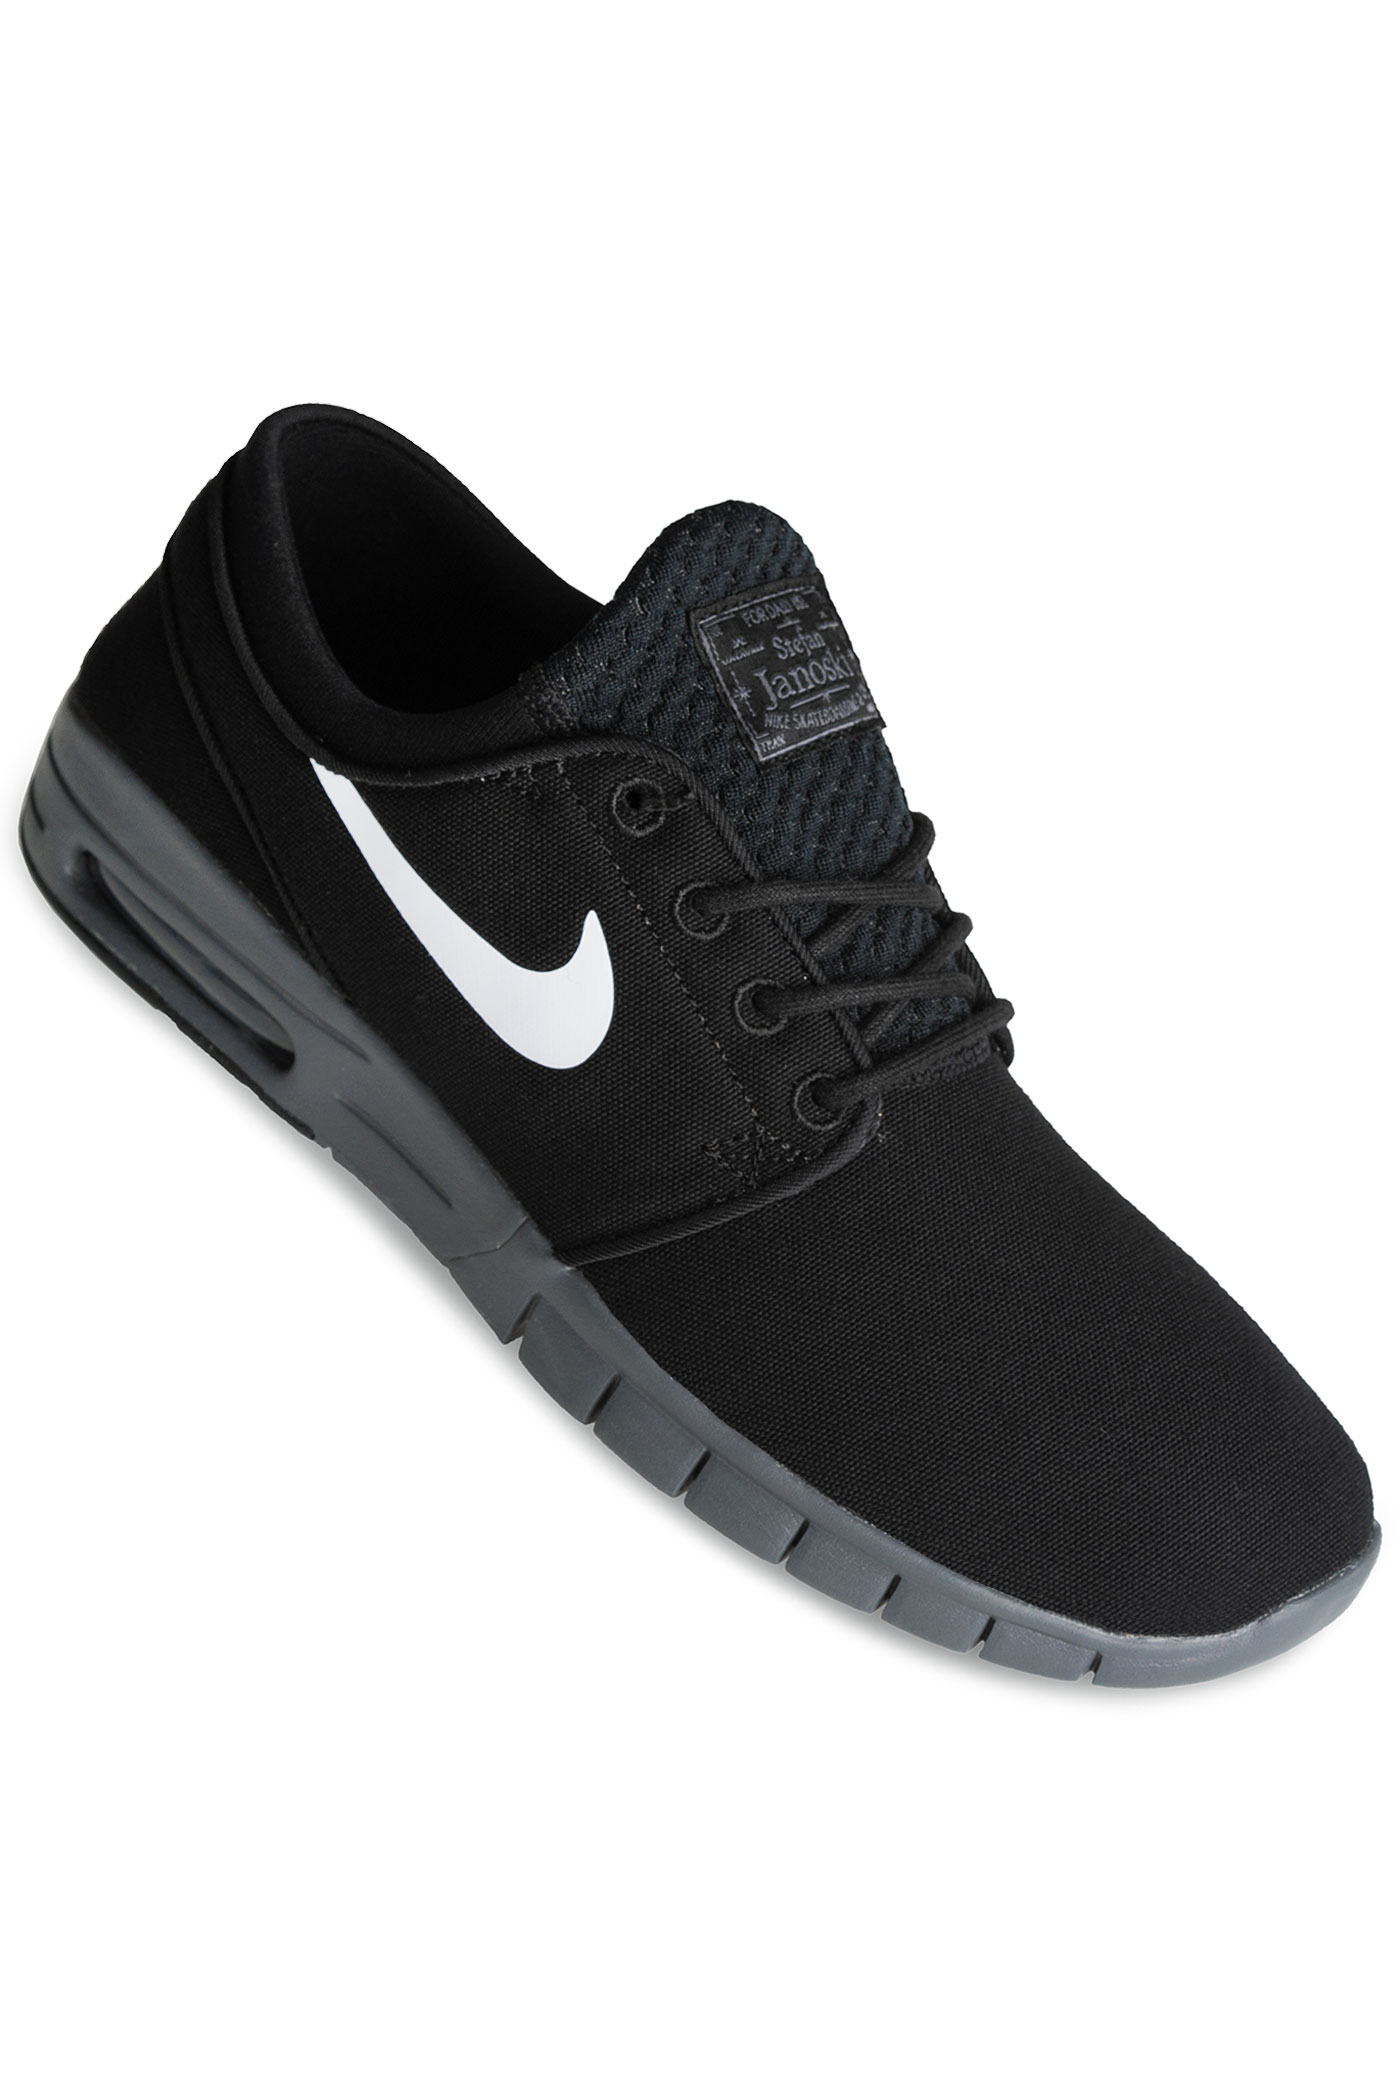 6b6300c0f7a Nike Sb Stefan Janoski Max Dark Grey extreme-hosting.co.uk